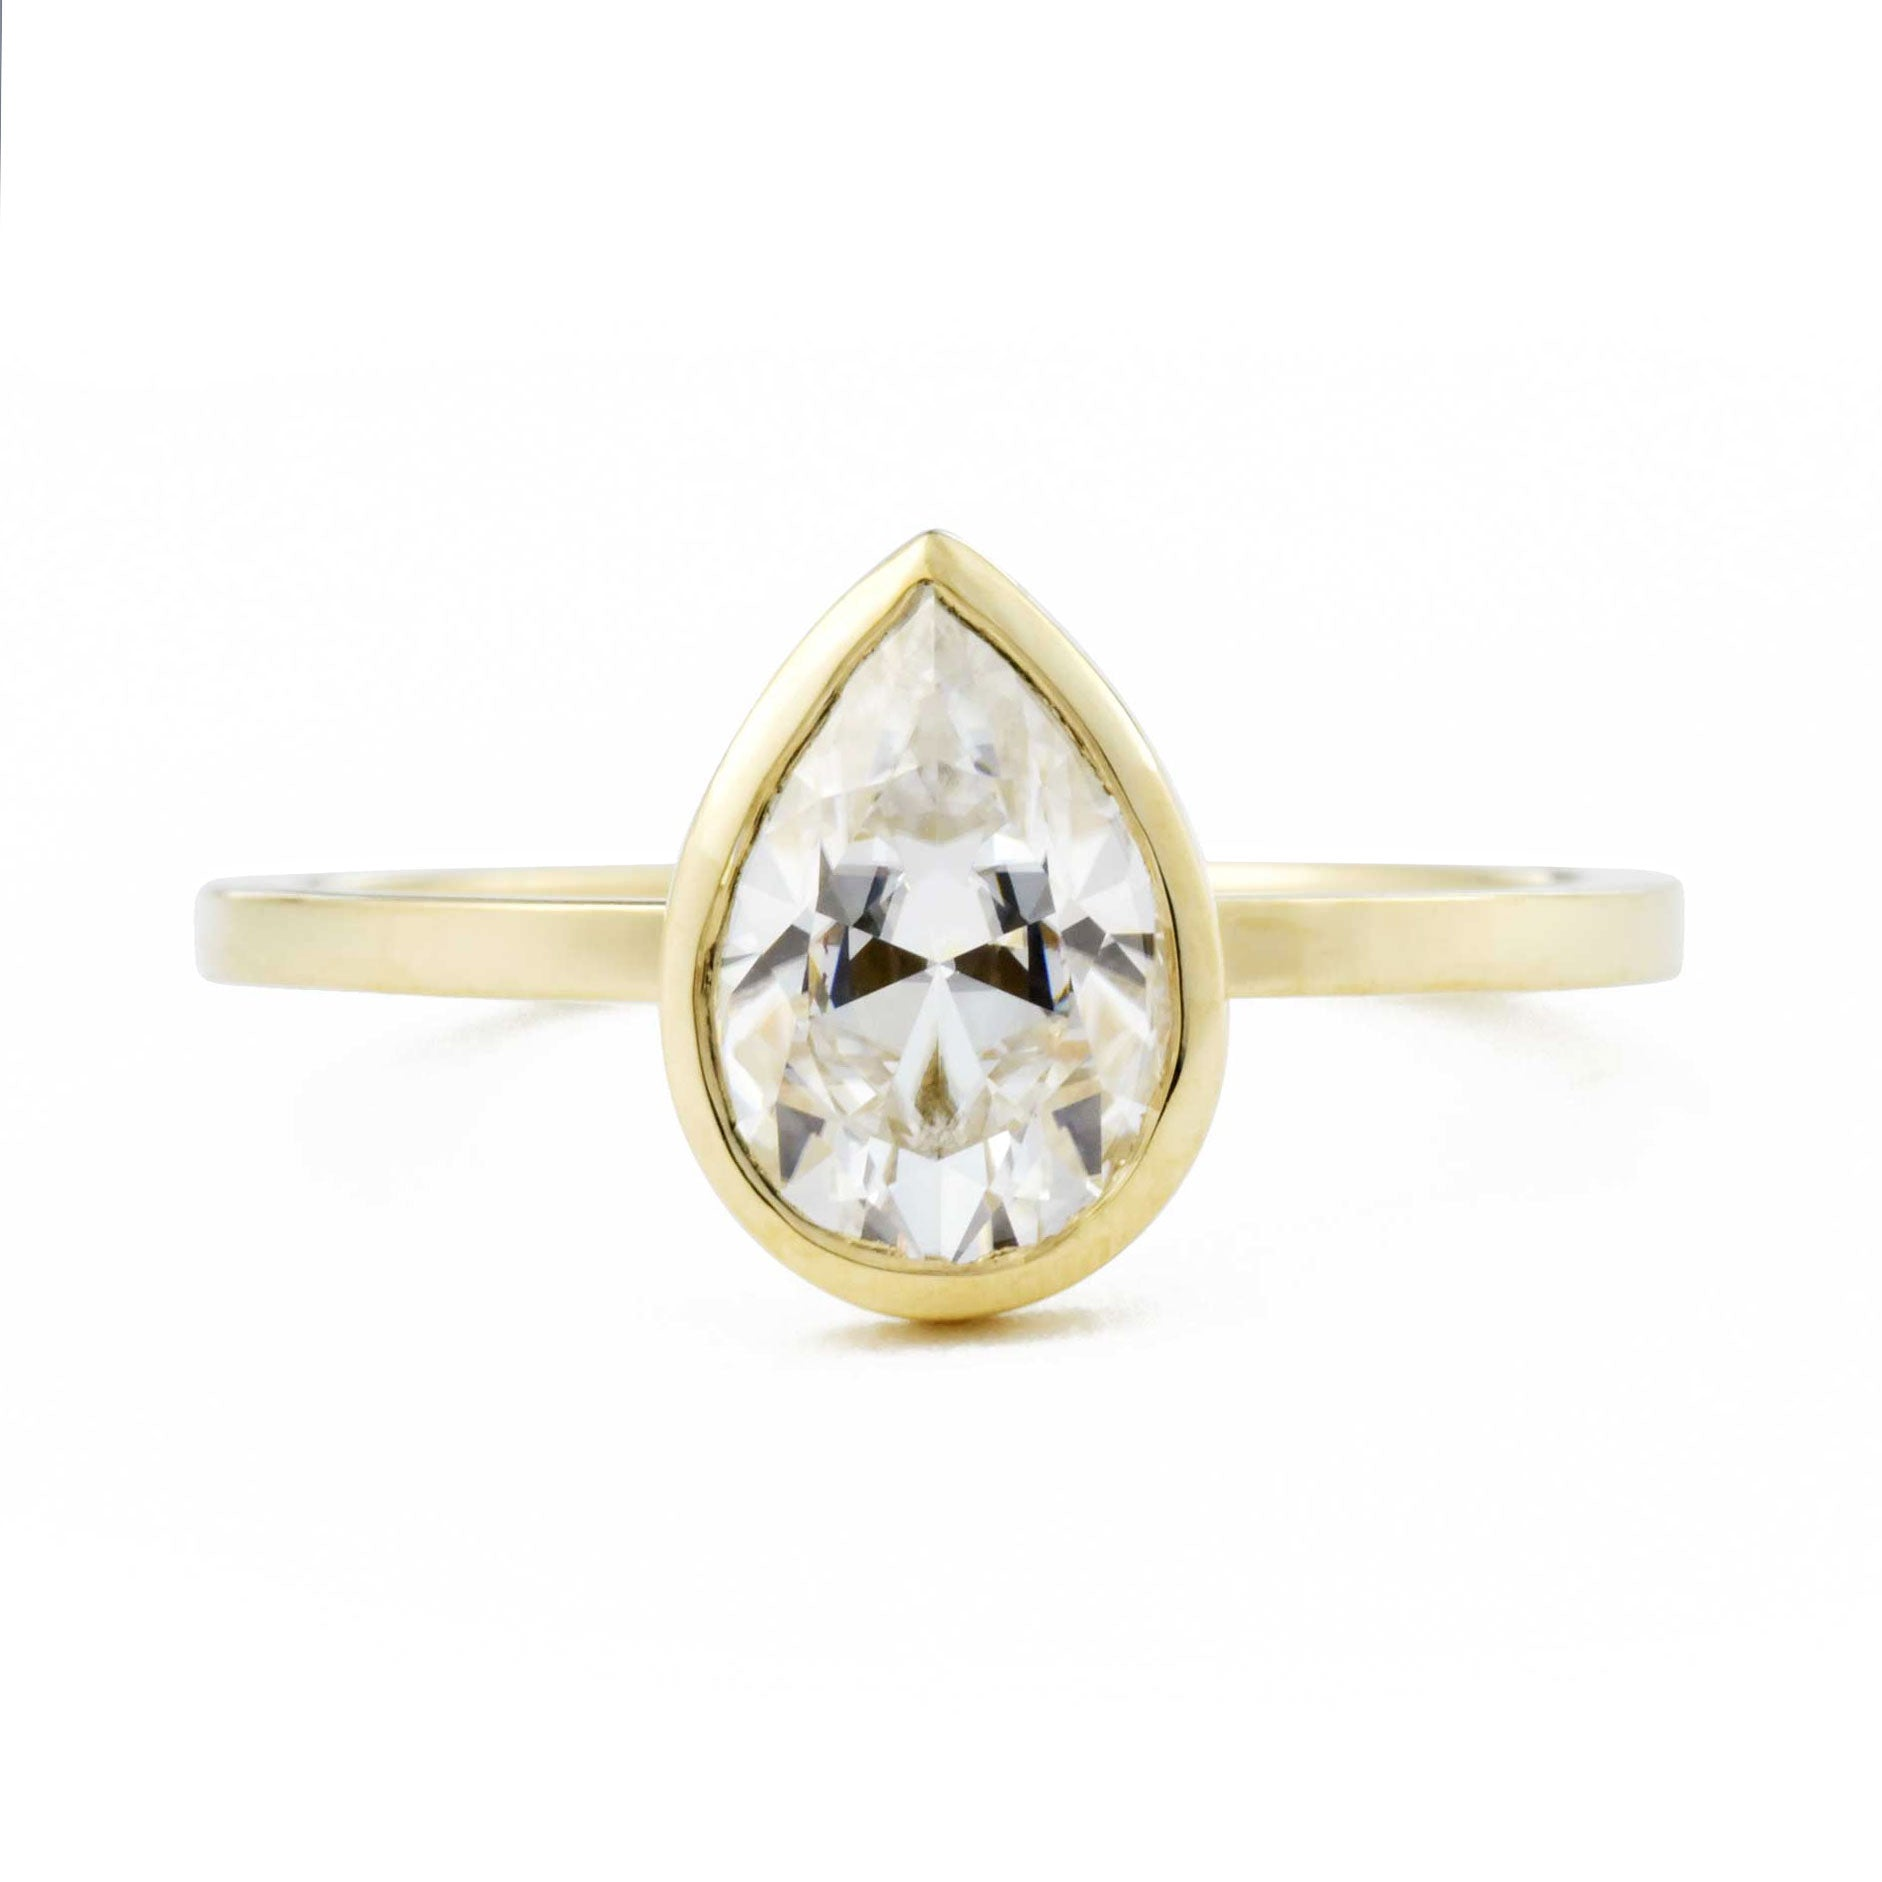 Aura Pear Bezel 1.5ct Moissanite Engagement Ring in yellow gold